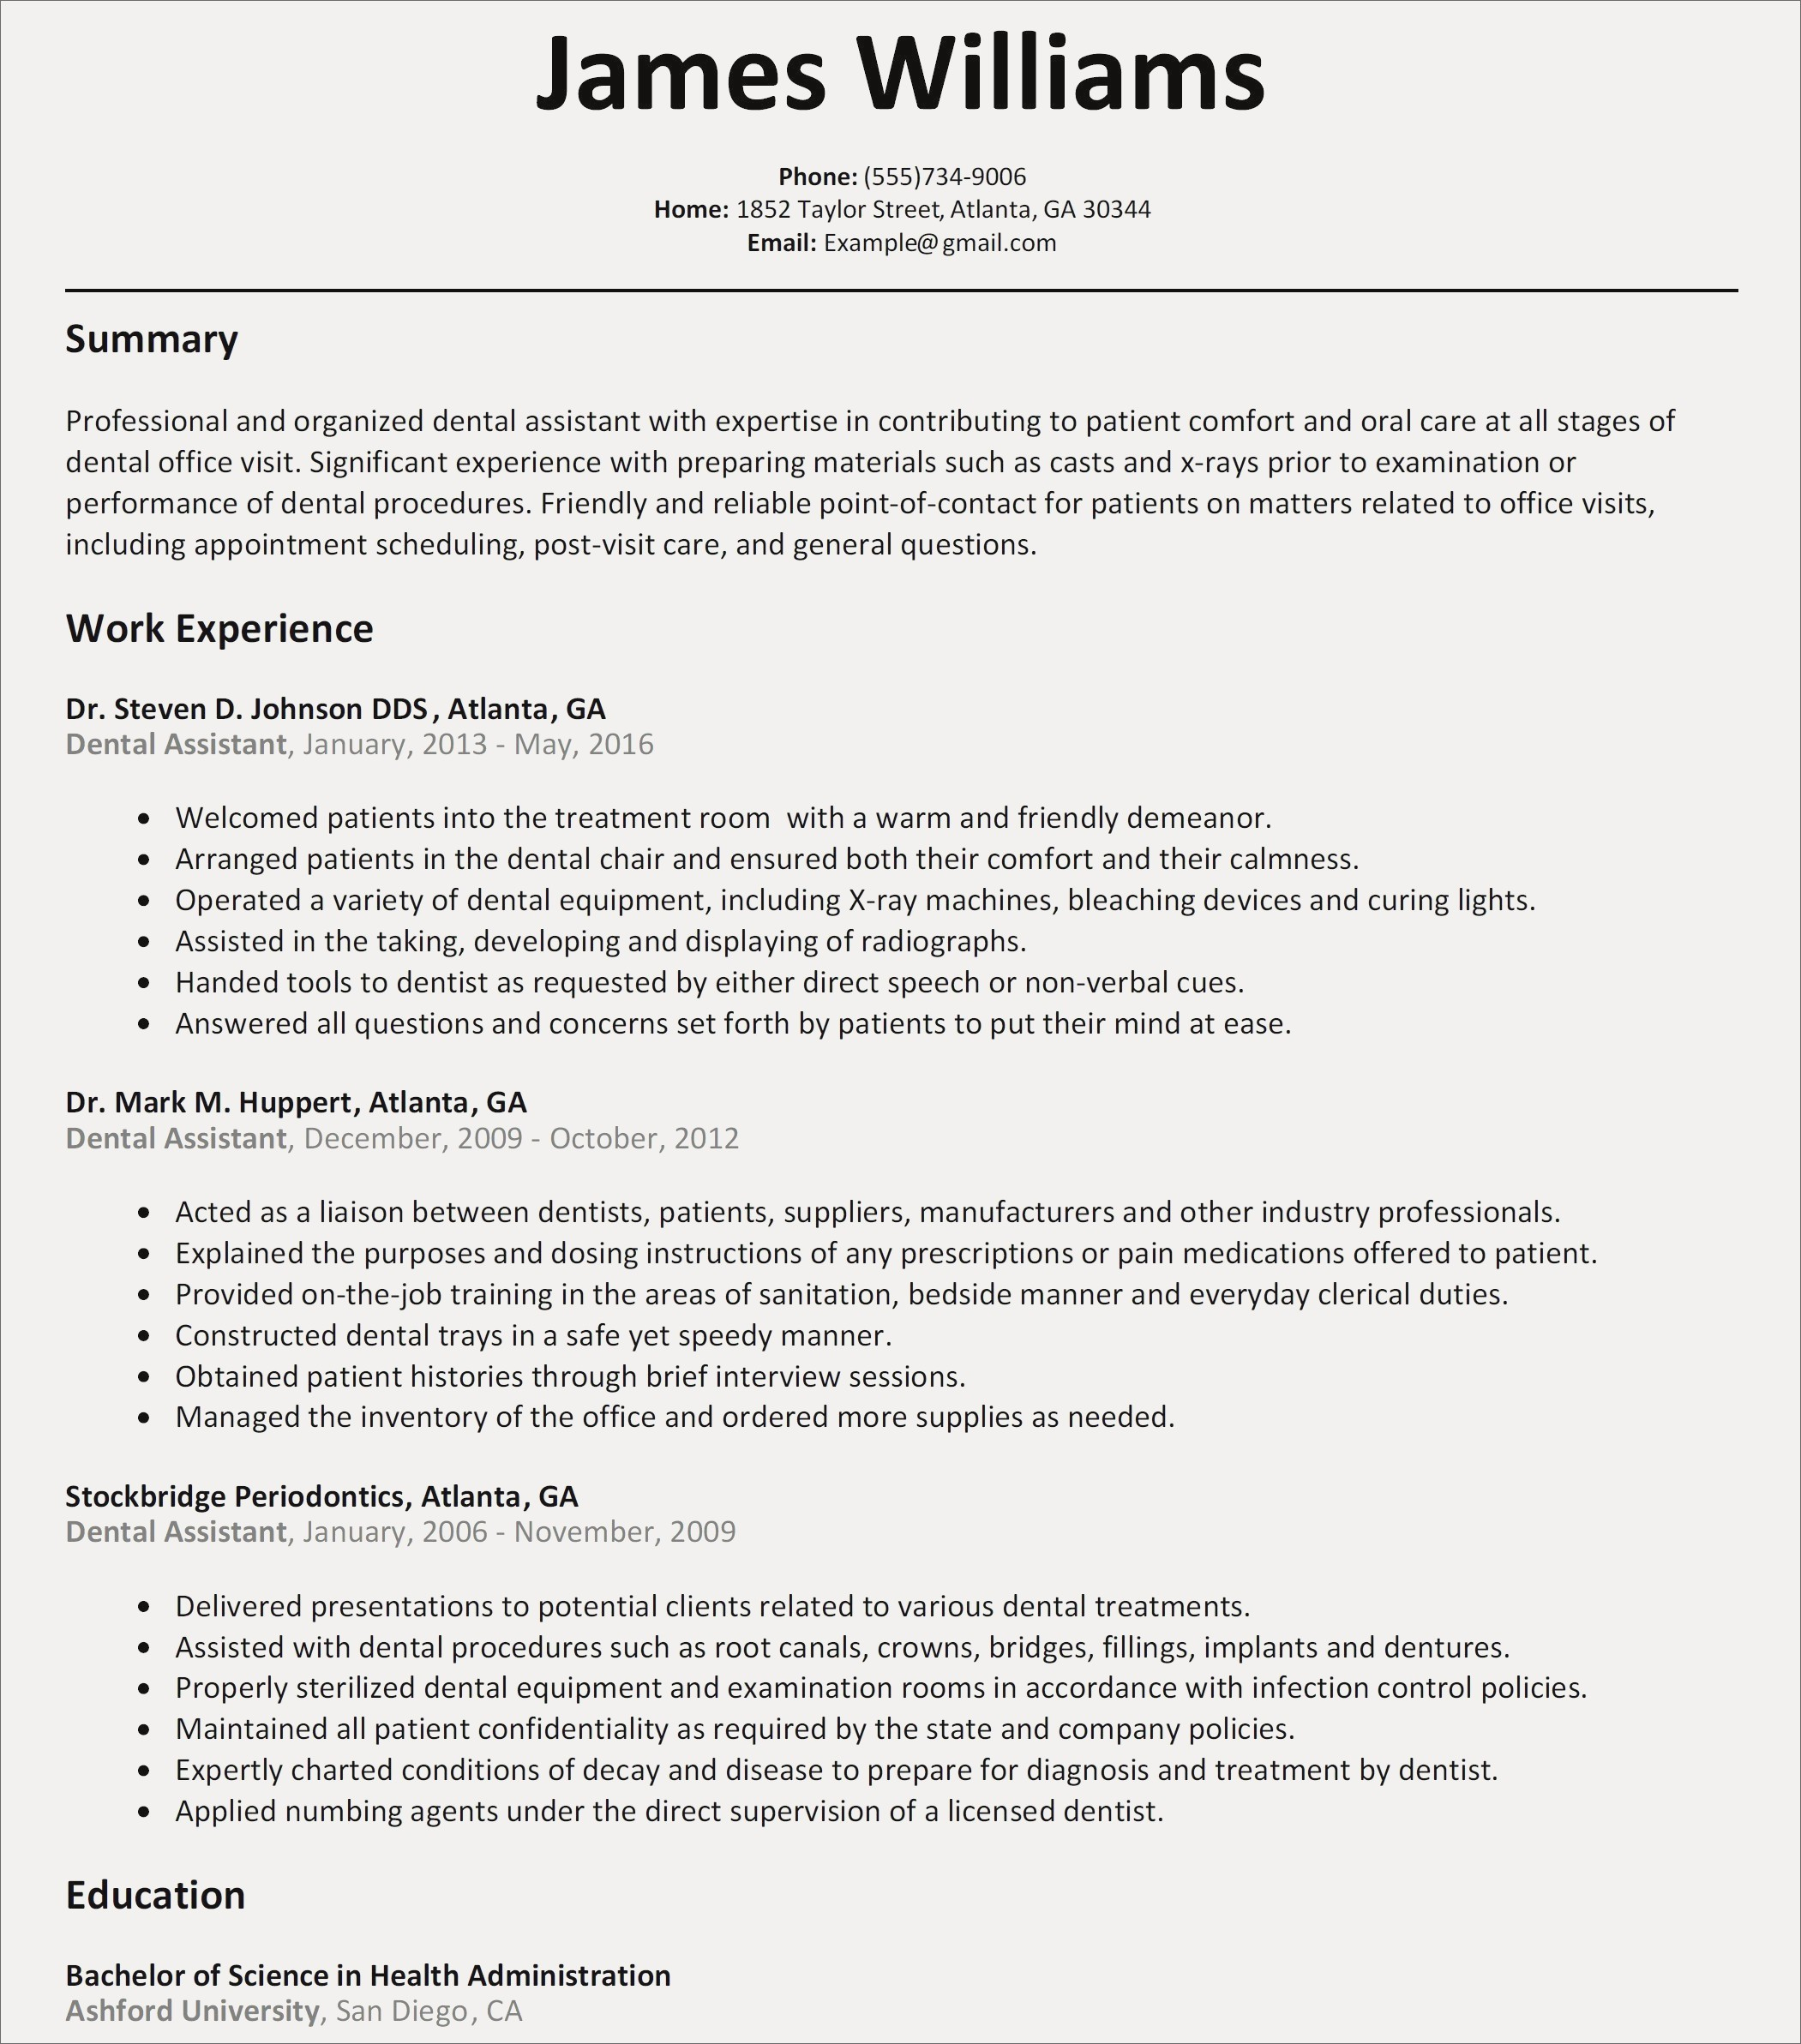 Professional Experience Resume - Resume Professional Summary Examples New Sample Resumes